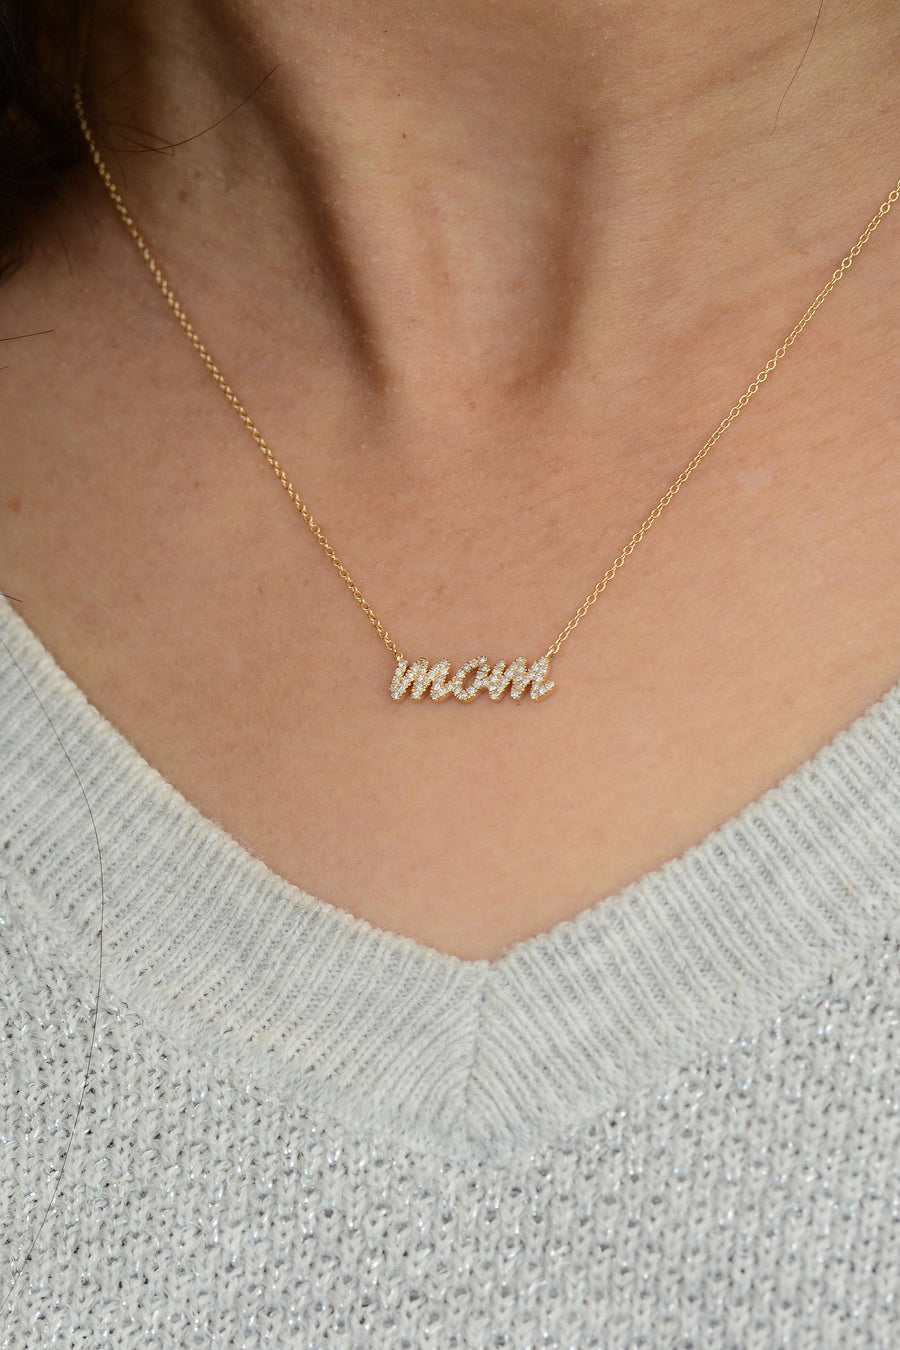 Diamond mom necklace, mothers necklace